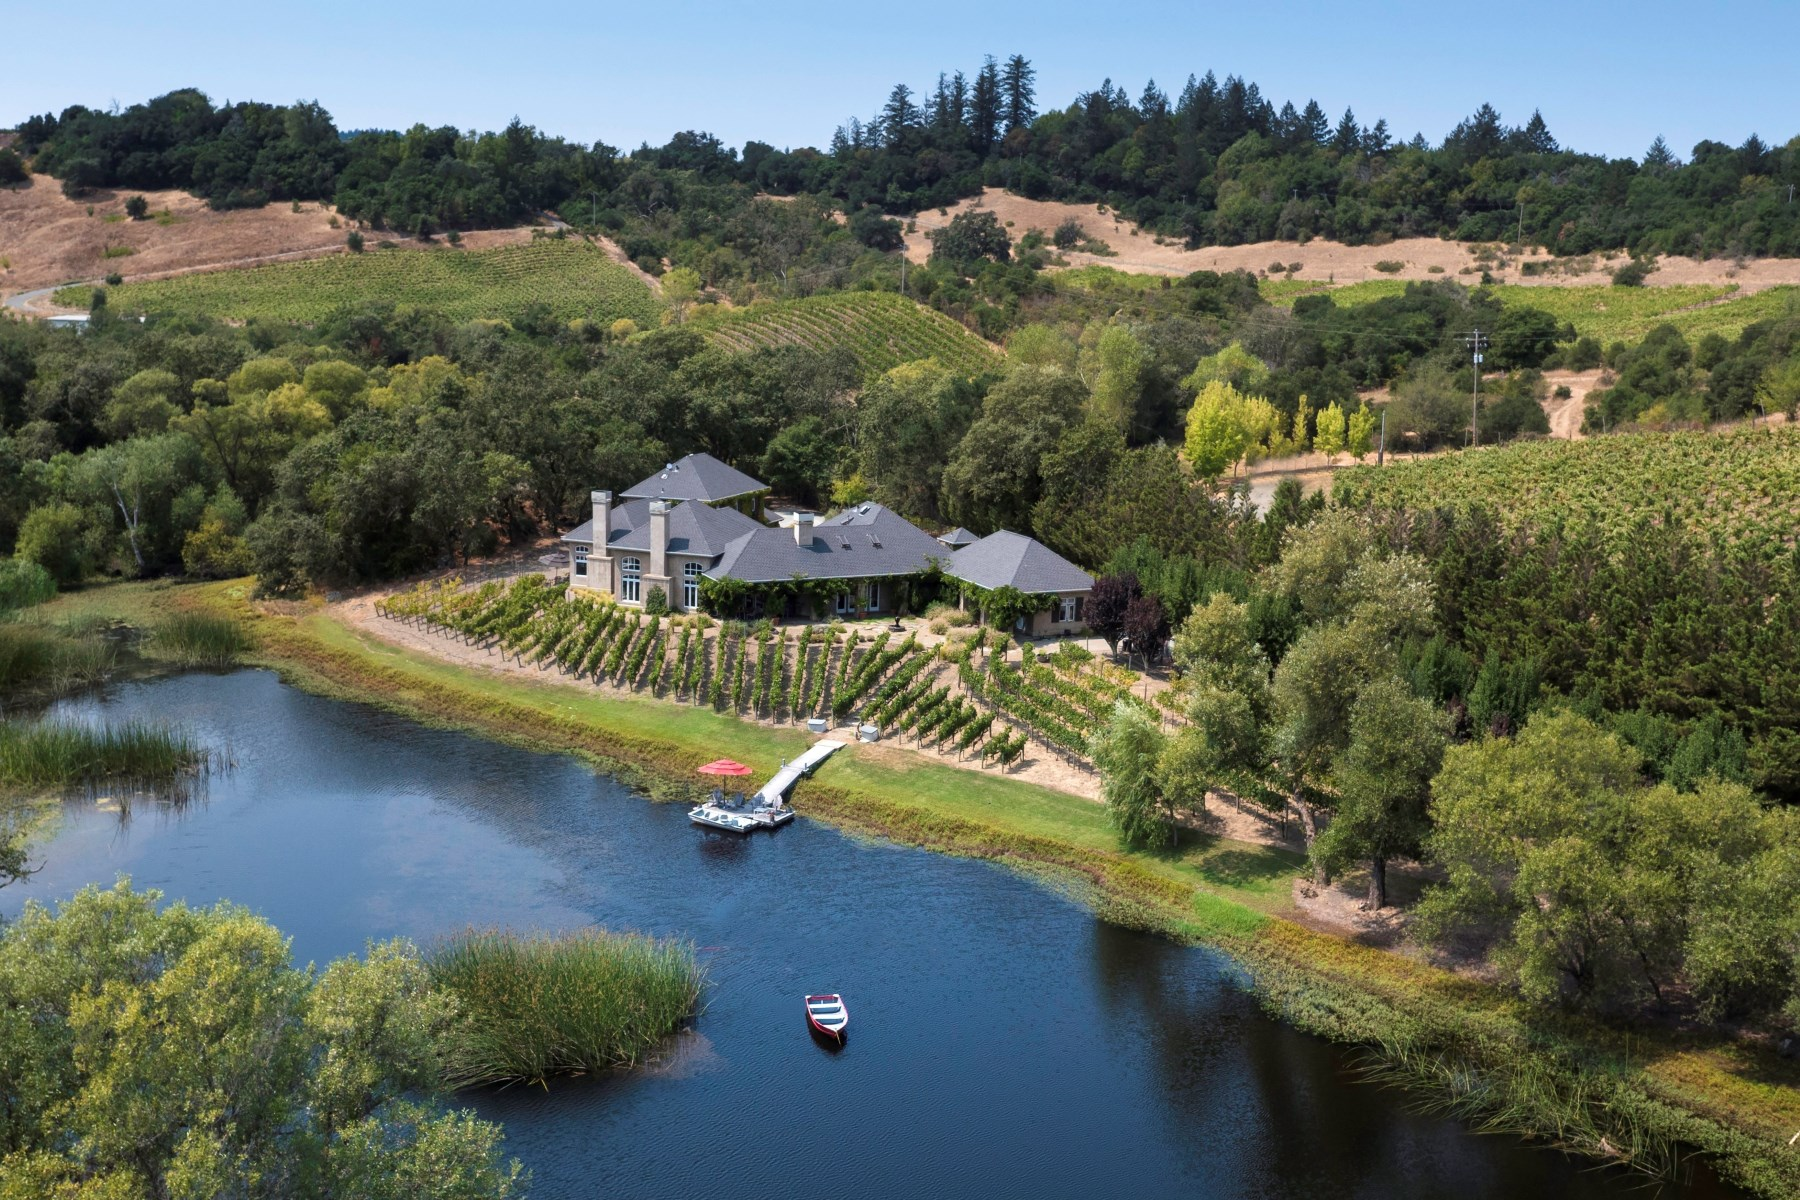 Single Family Home for Sale at Wine Country Lakeside Estate 3315 Westside Rd Healdsburg, California, 95448 United States